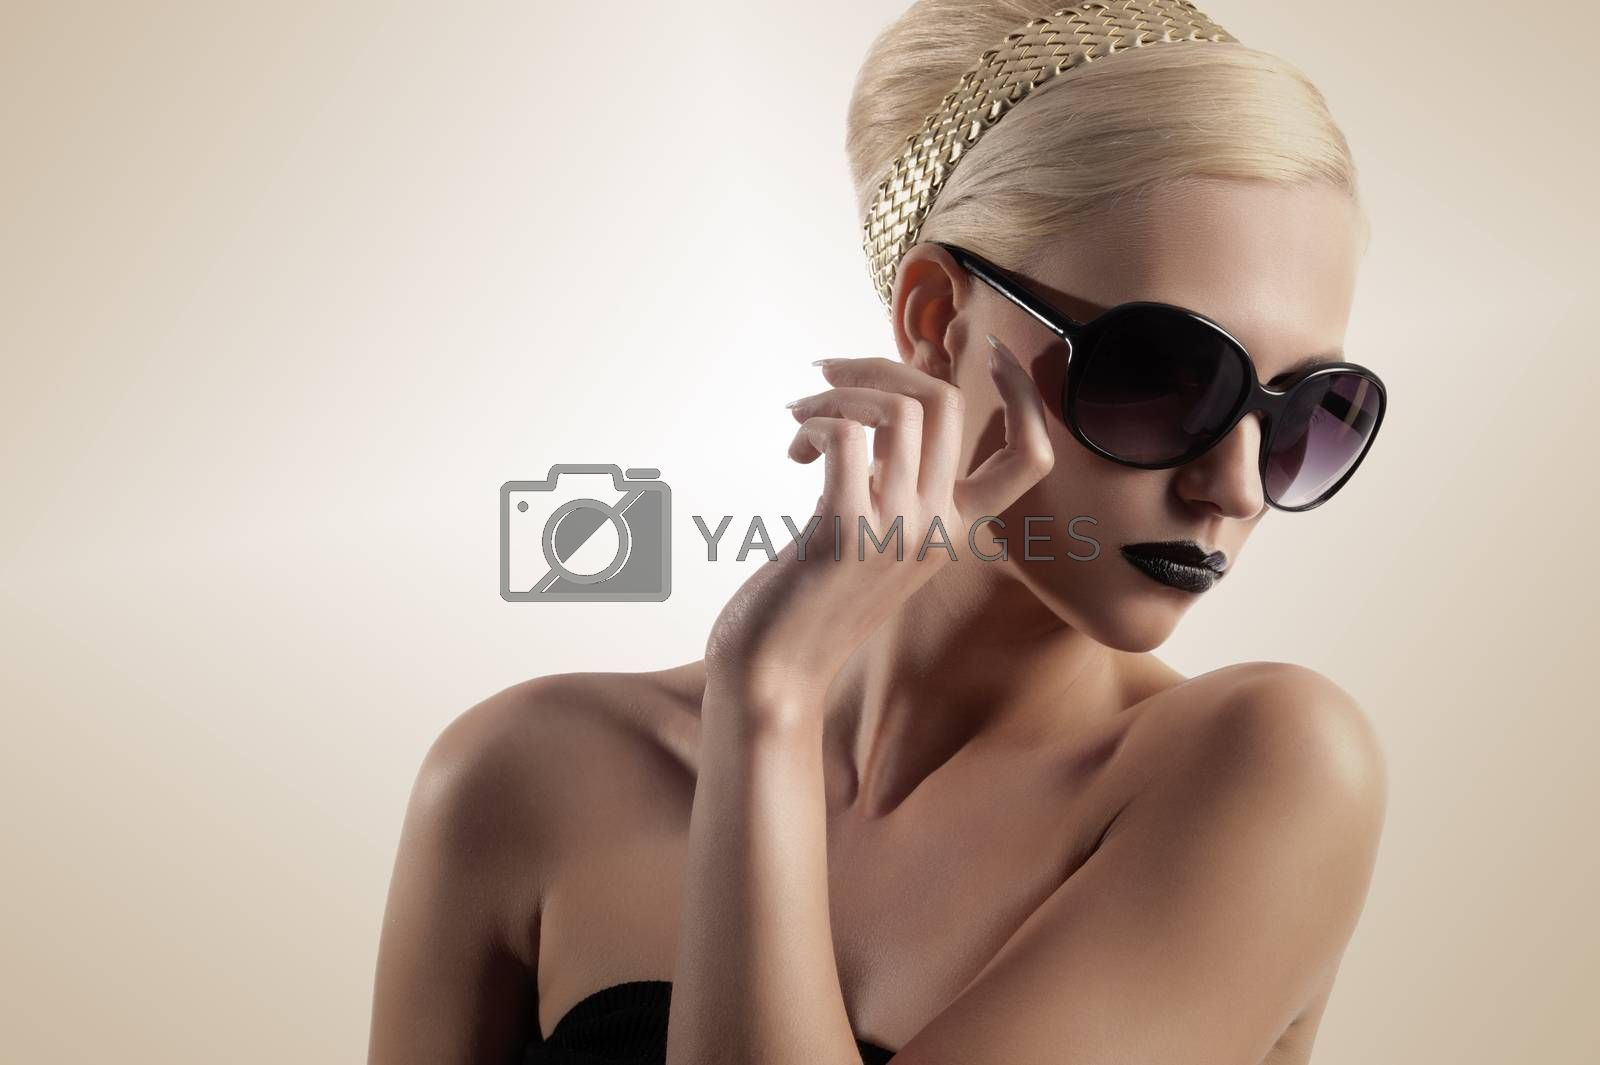 Royalty free image of blond girl with sunglasses by fotoCD